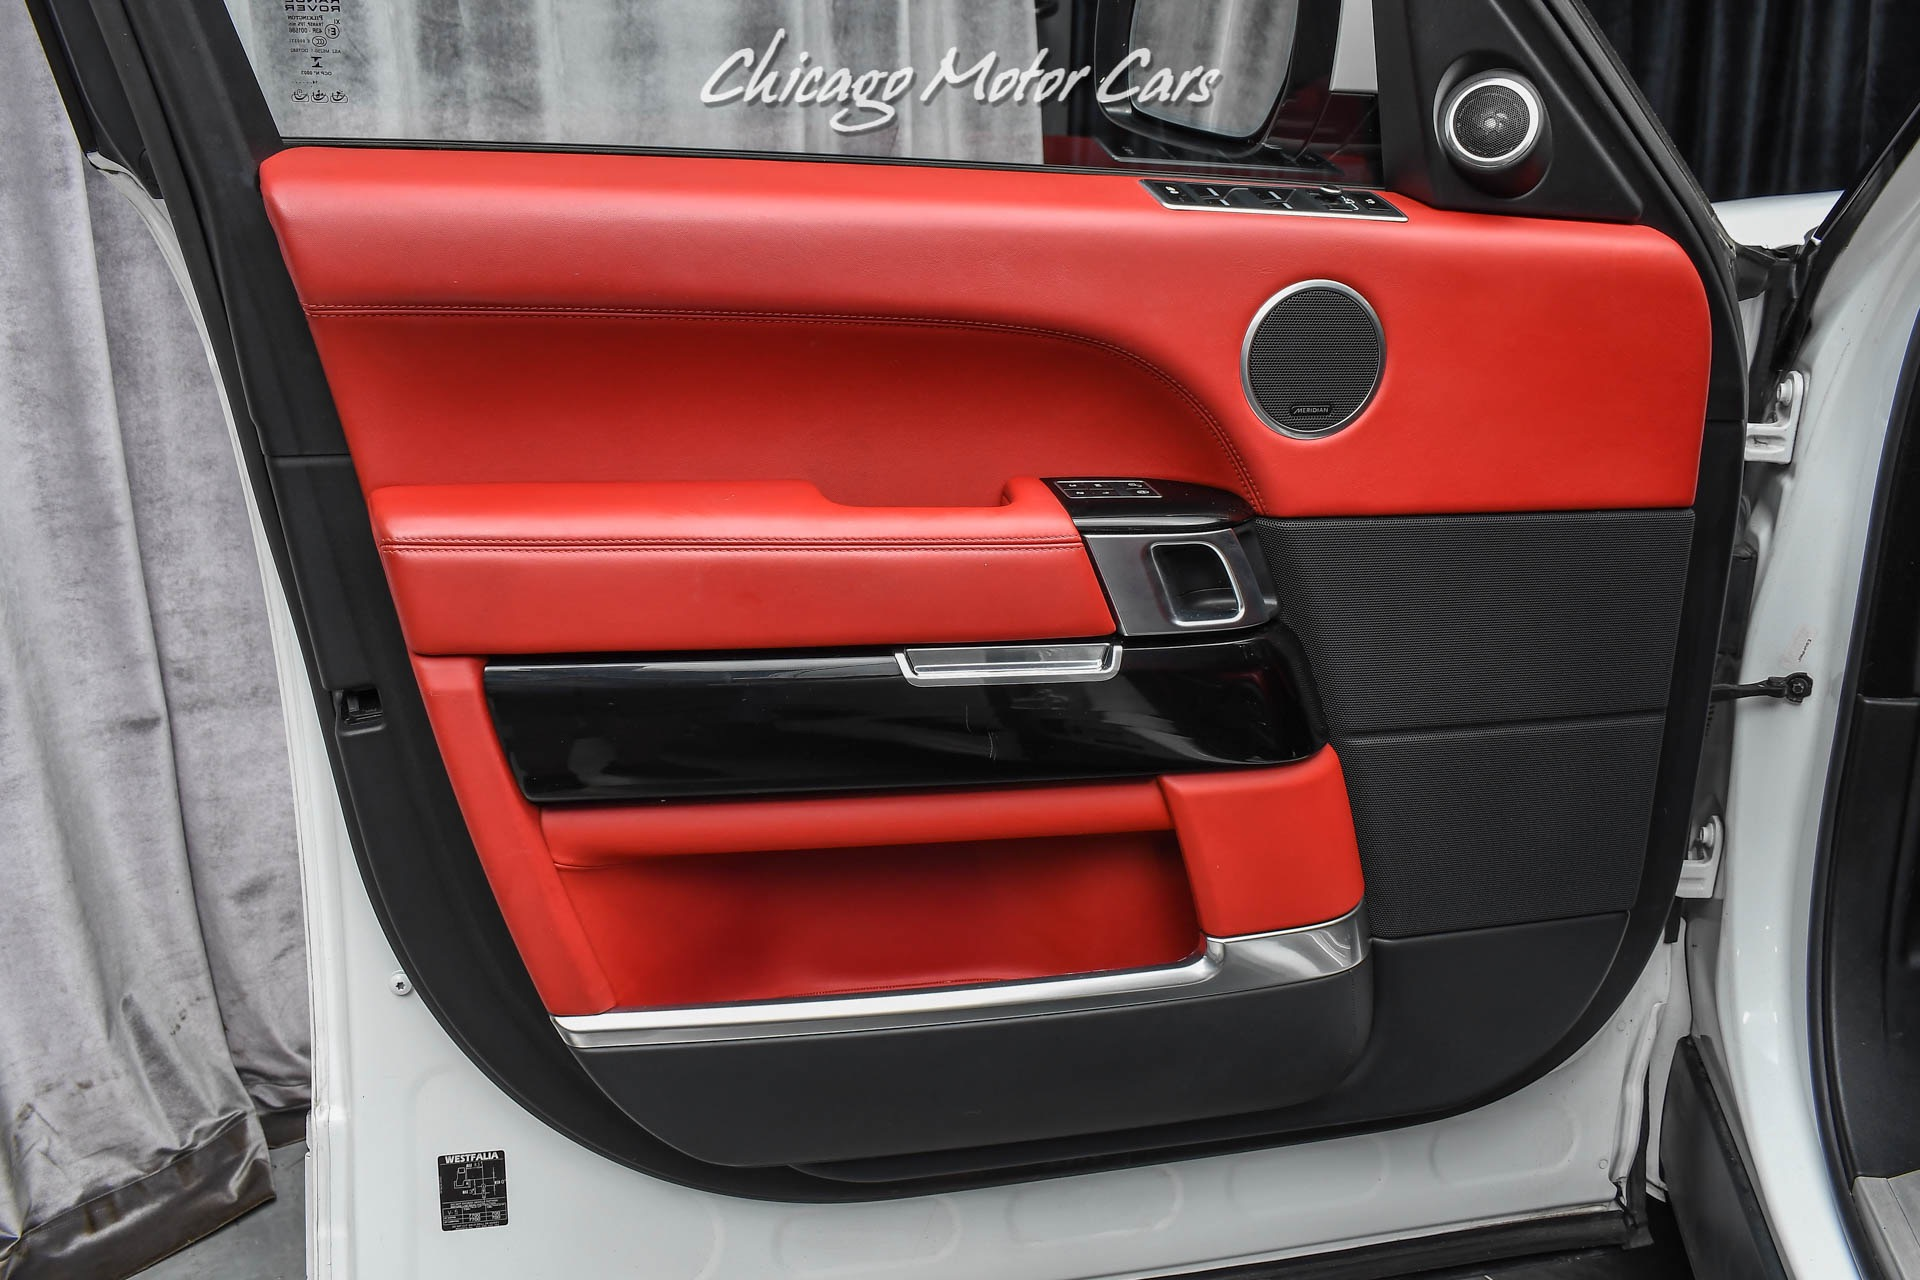 Used-2014-Land-Rover-Range-Rover-Autobiography-Rare-Red-Interior-Rear-Seat-Entertainment